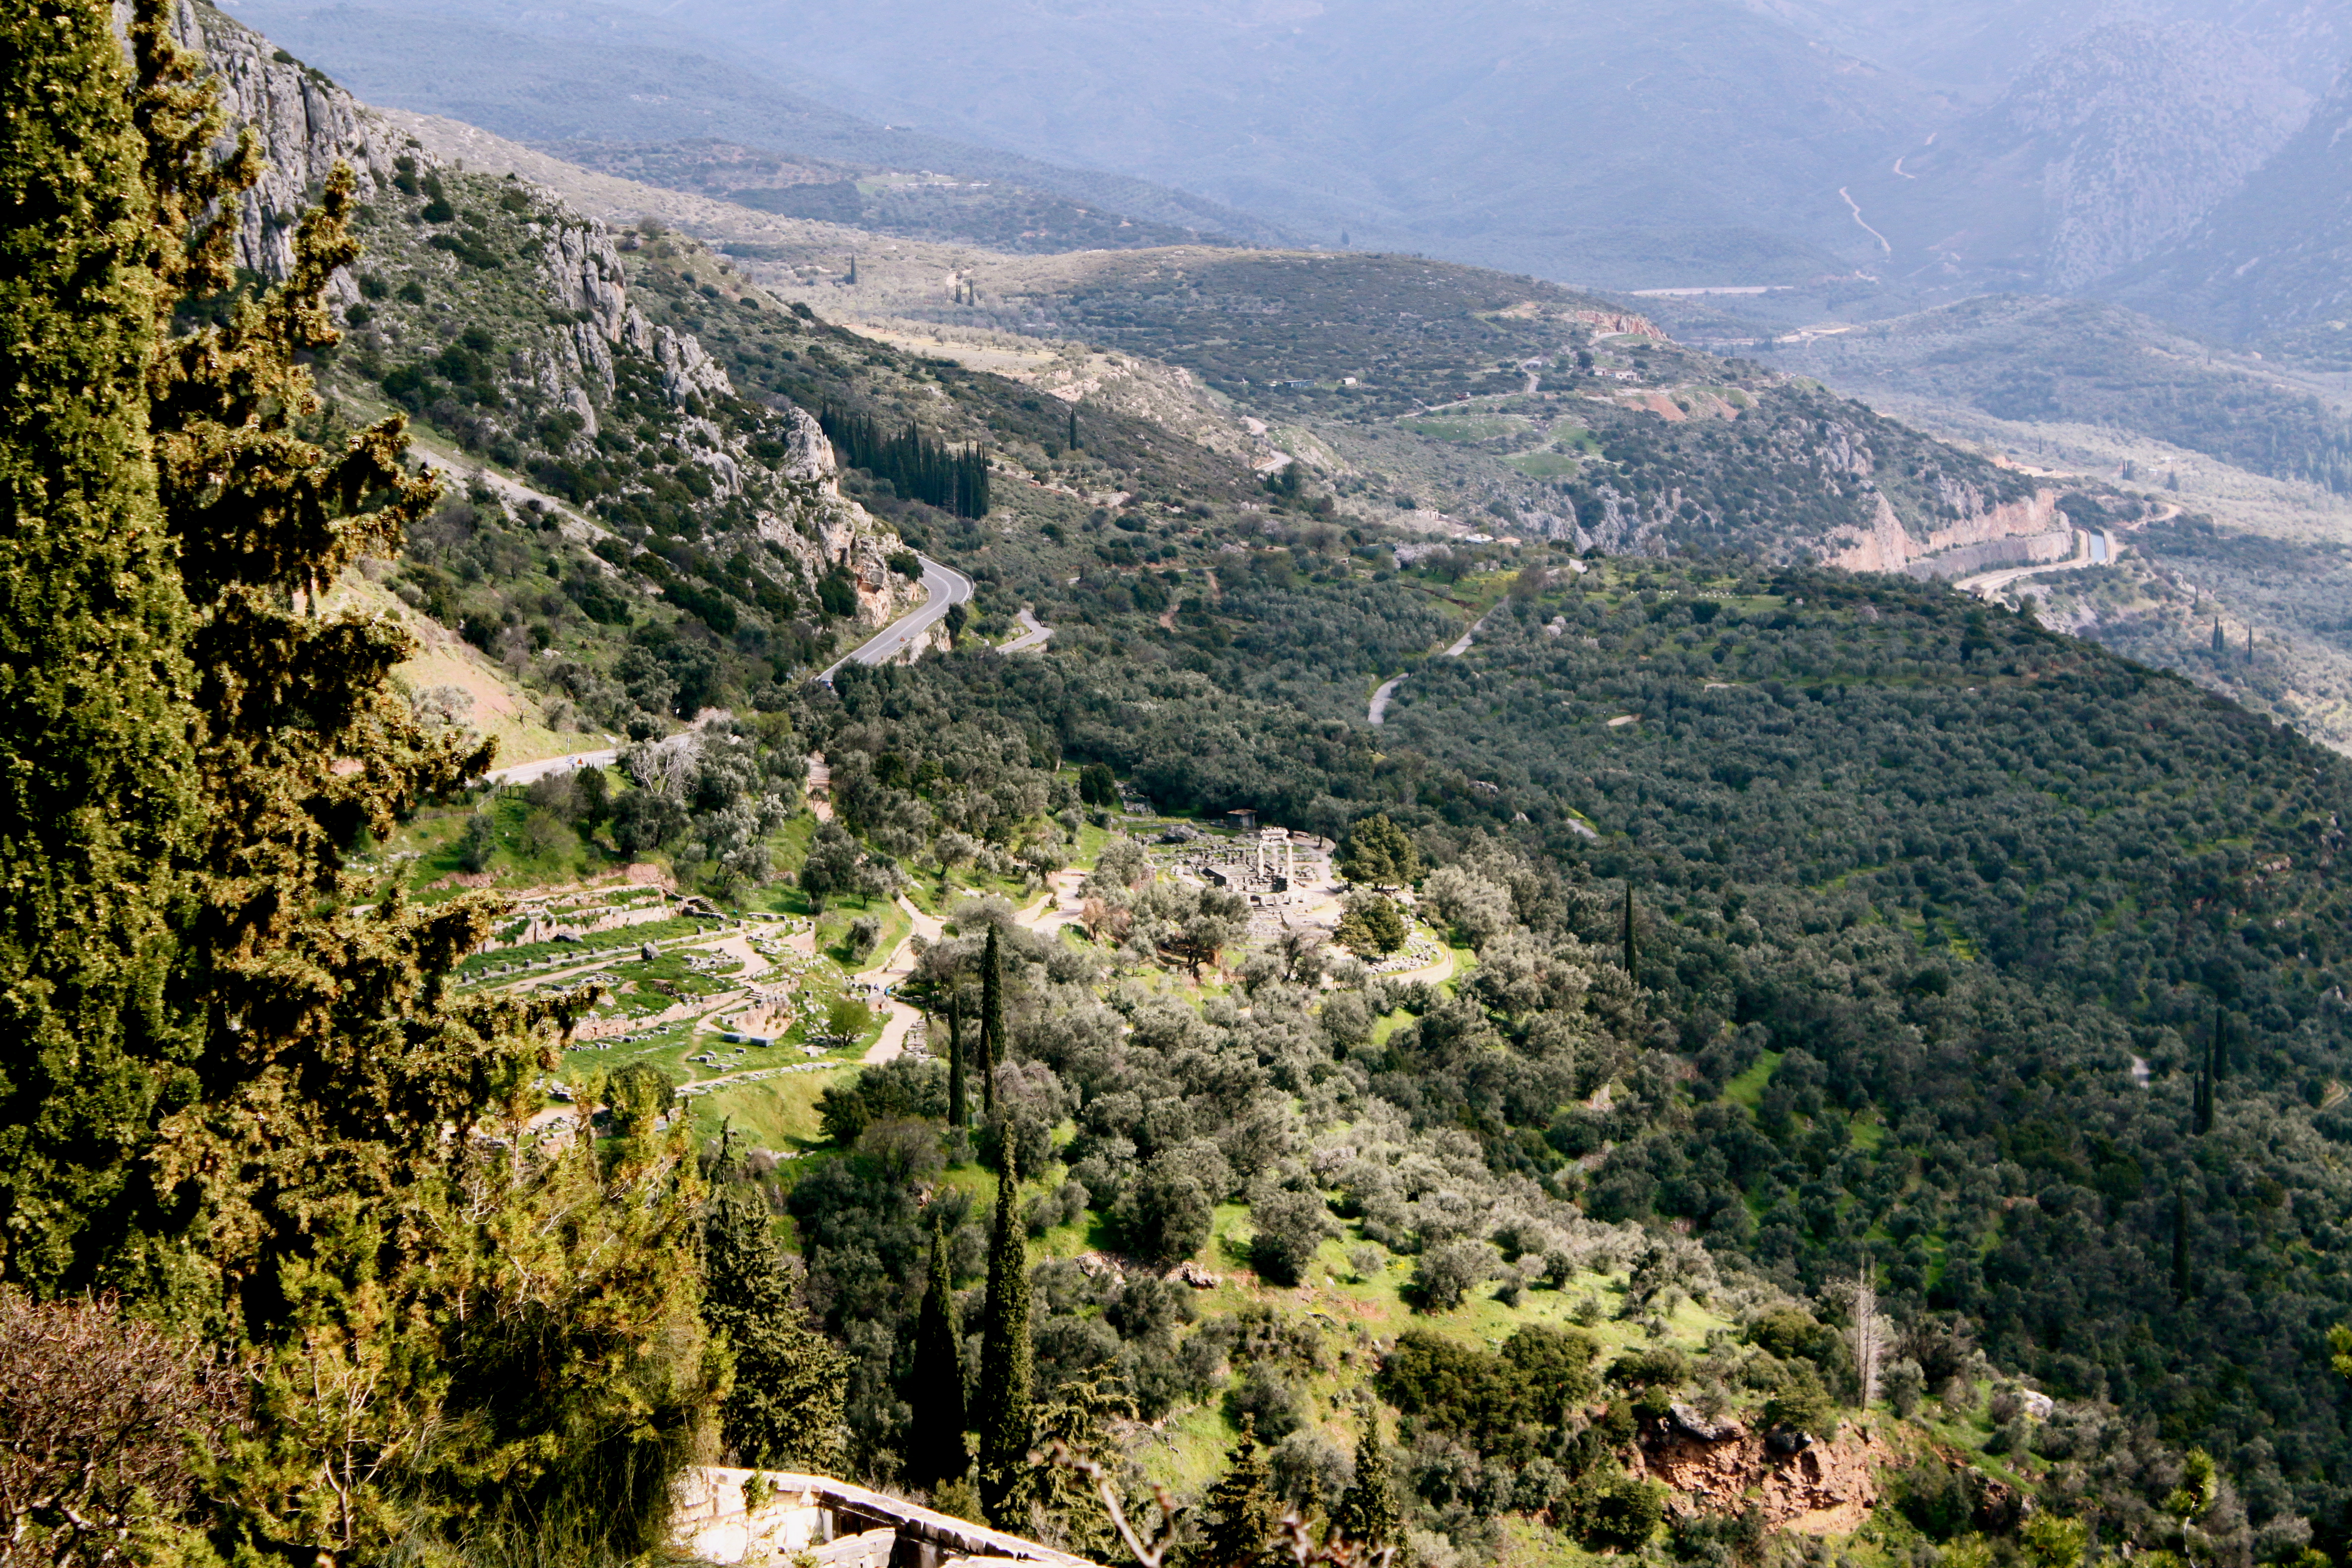 Valley, Gymnasium and Sanctuary of Apollo